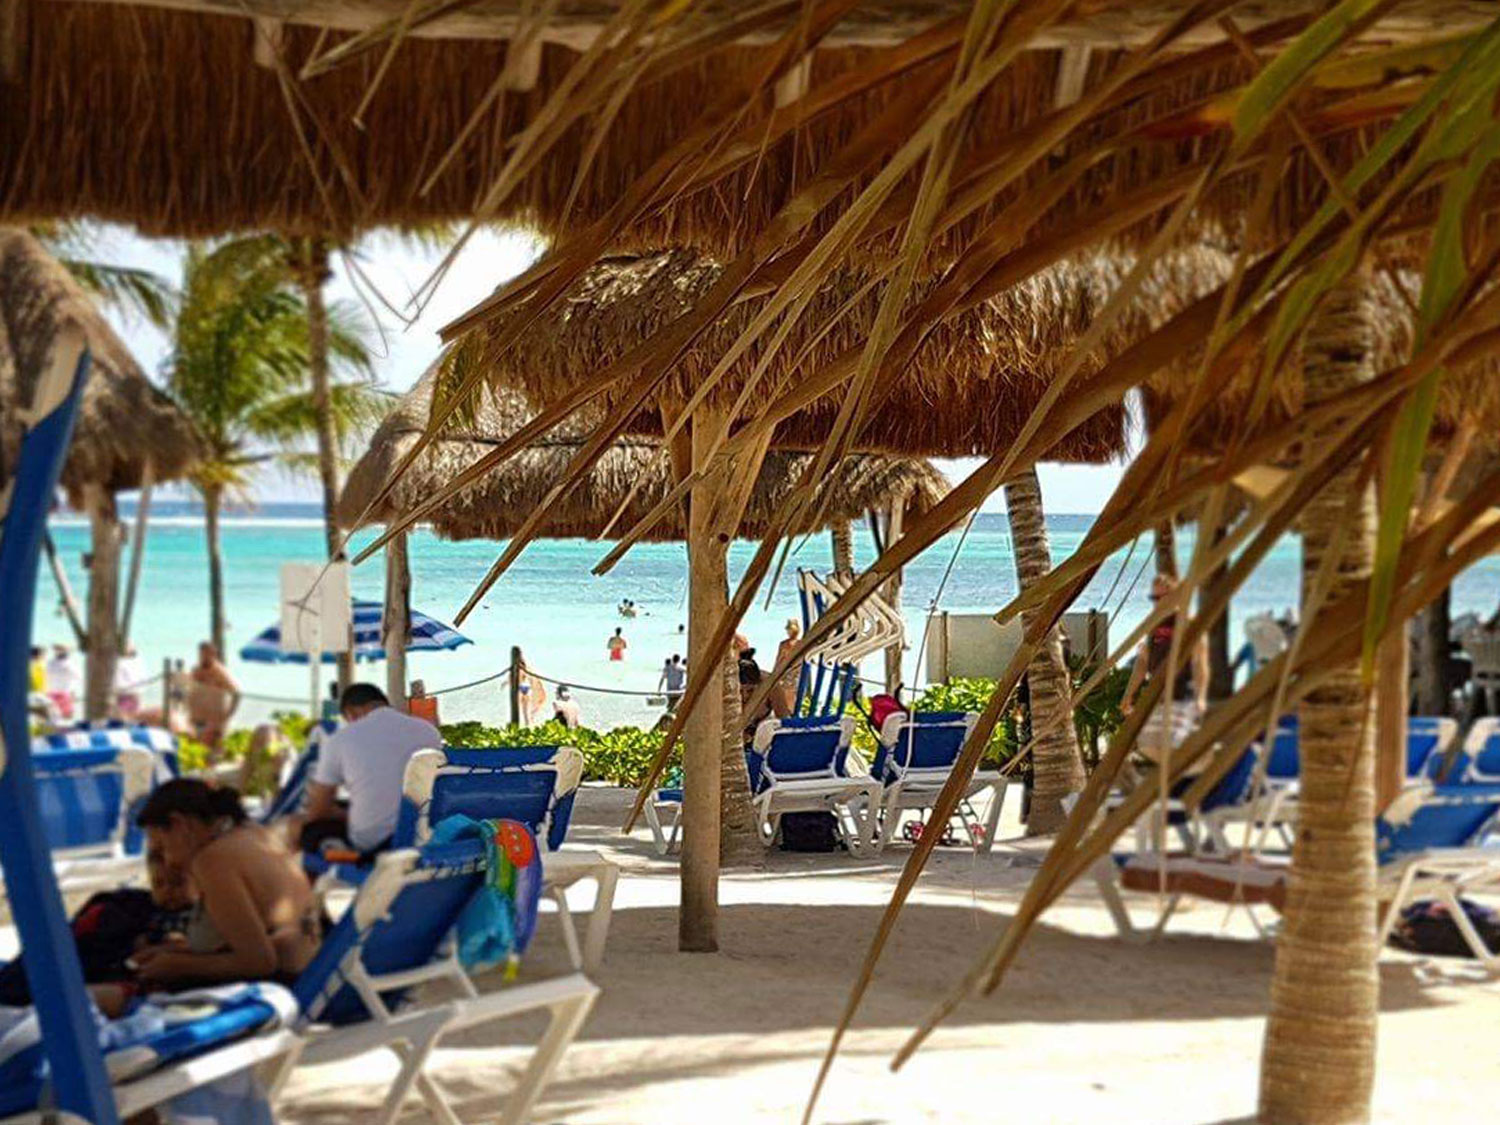 Hammocks_and_Ruins_Blog_Riviera_Maya_Mexico_Travel_Discover_Explore_Playa_del_Carmen_Beaches_Akumal_19.jpg